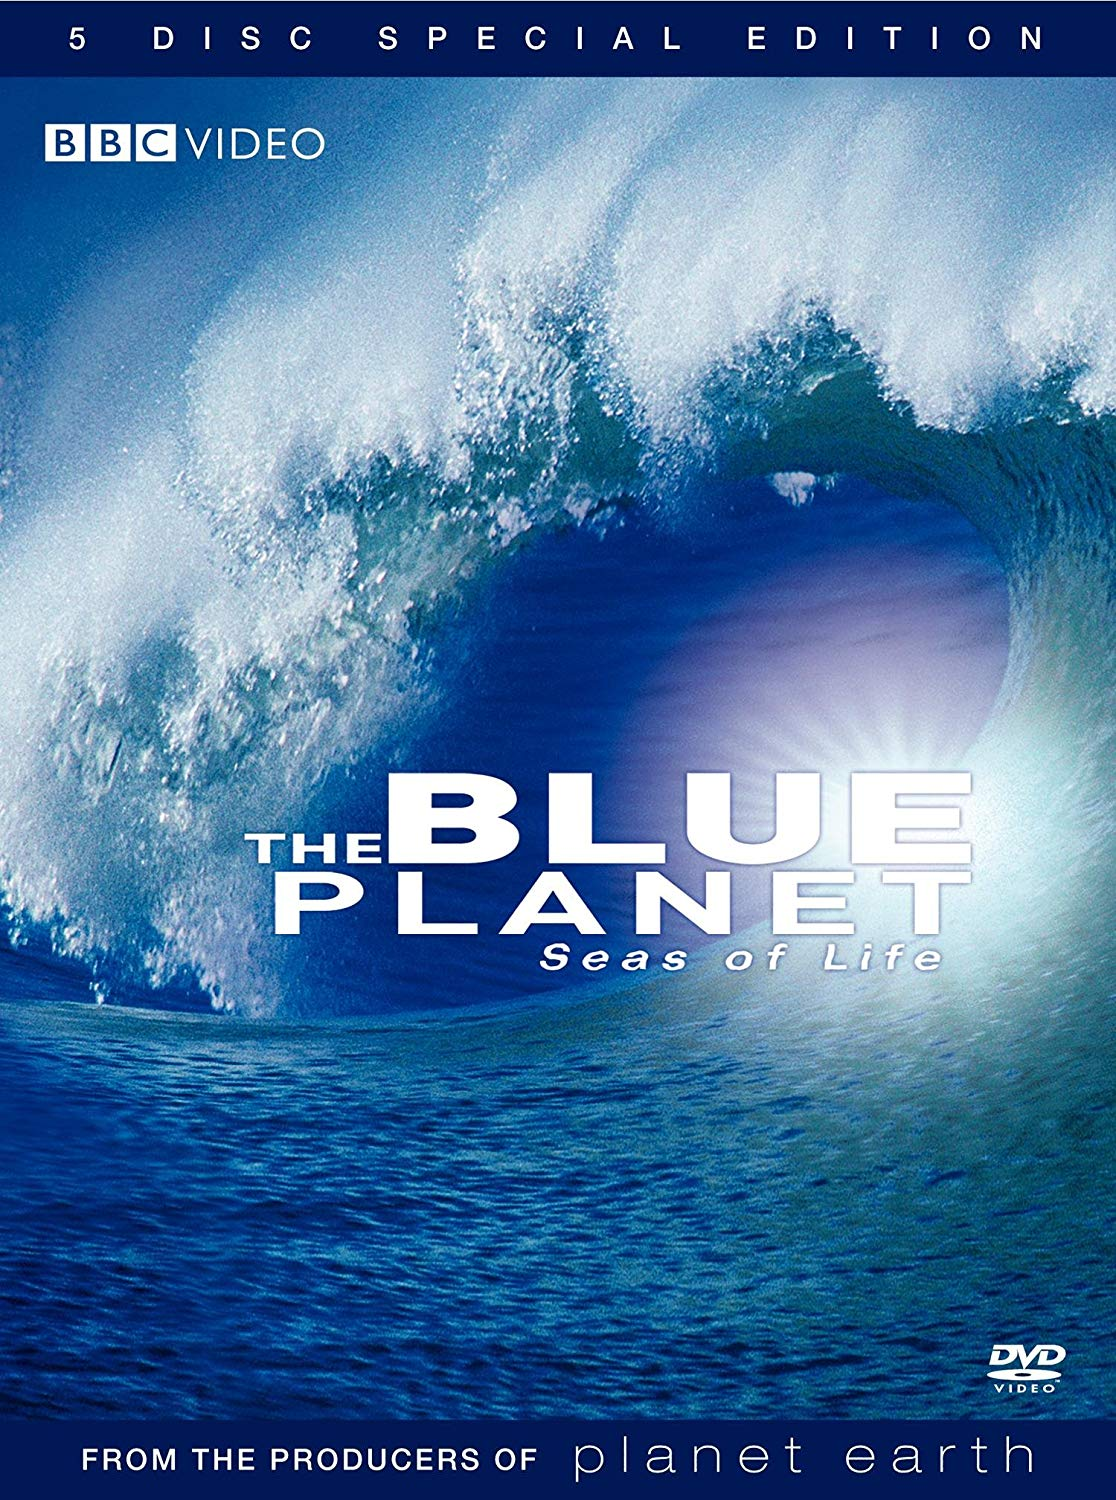 Blue Planet: Seas of Life (2008) - [DVD Documentary Series]Before creating the monumental Planet Earth series, producer Alastair Fothergill and his team from the BBC put together one of the most breathtaking explorations of the world's oceans ever assembled, The Blue Planet: Seas of Life. The winner of two Emmy(R) Awards, The Blue Planet: Seas of Life is the definitive exploration of the marine world, chronicling the mysteries the deep in ways never before imagined. It is now being re-released in an all-new special edition, with an added 5th disc of bonus programming not included in the original DVD release. See it again, like never before!